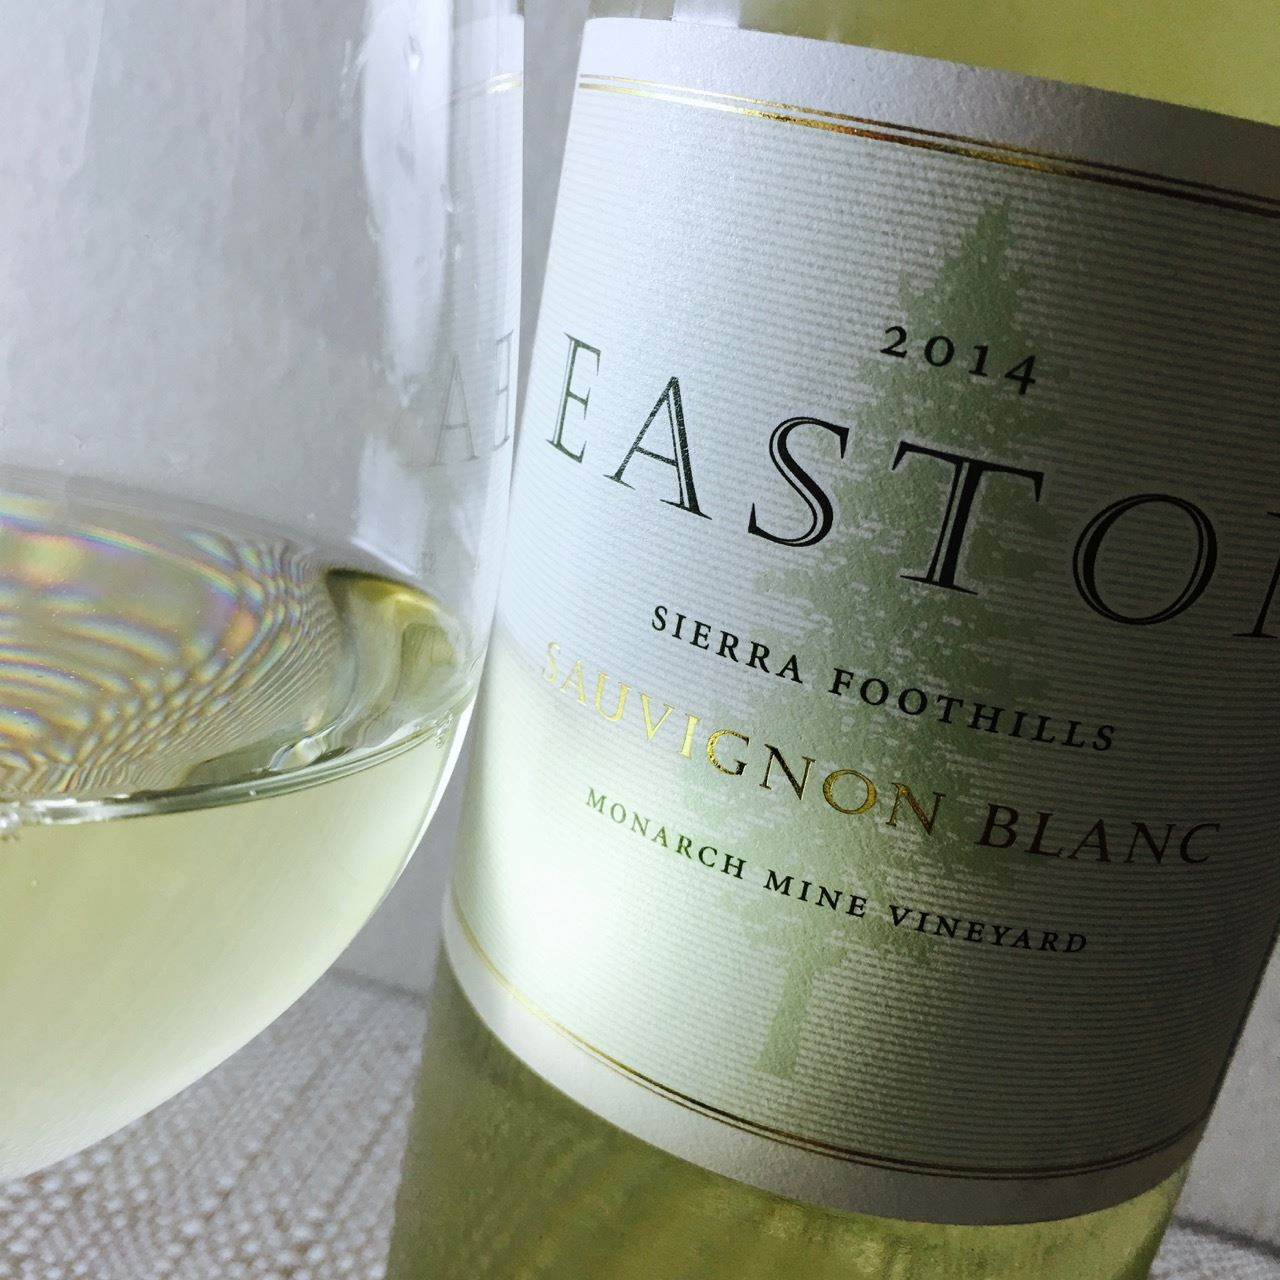 2014 Easton Sauvignon Blanc Monarch Mine Vineyard Sierra Foothills